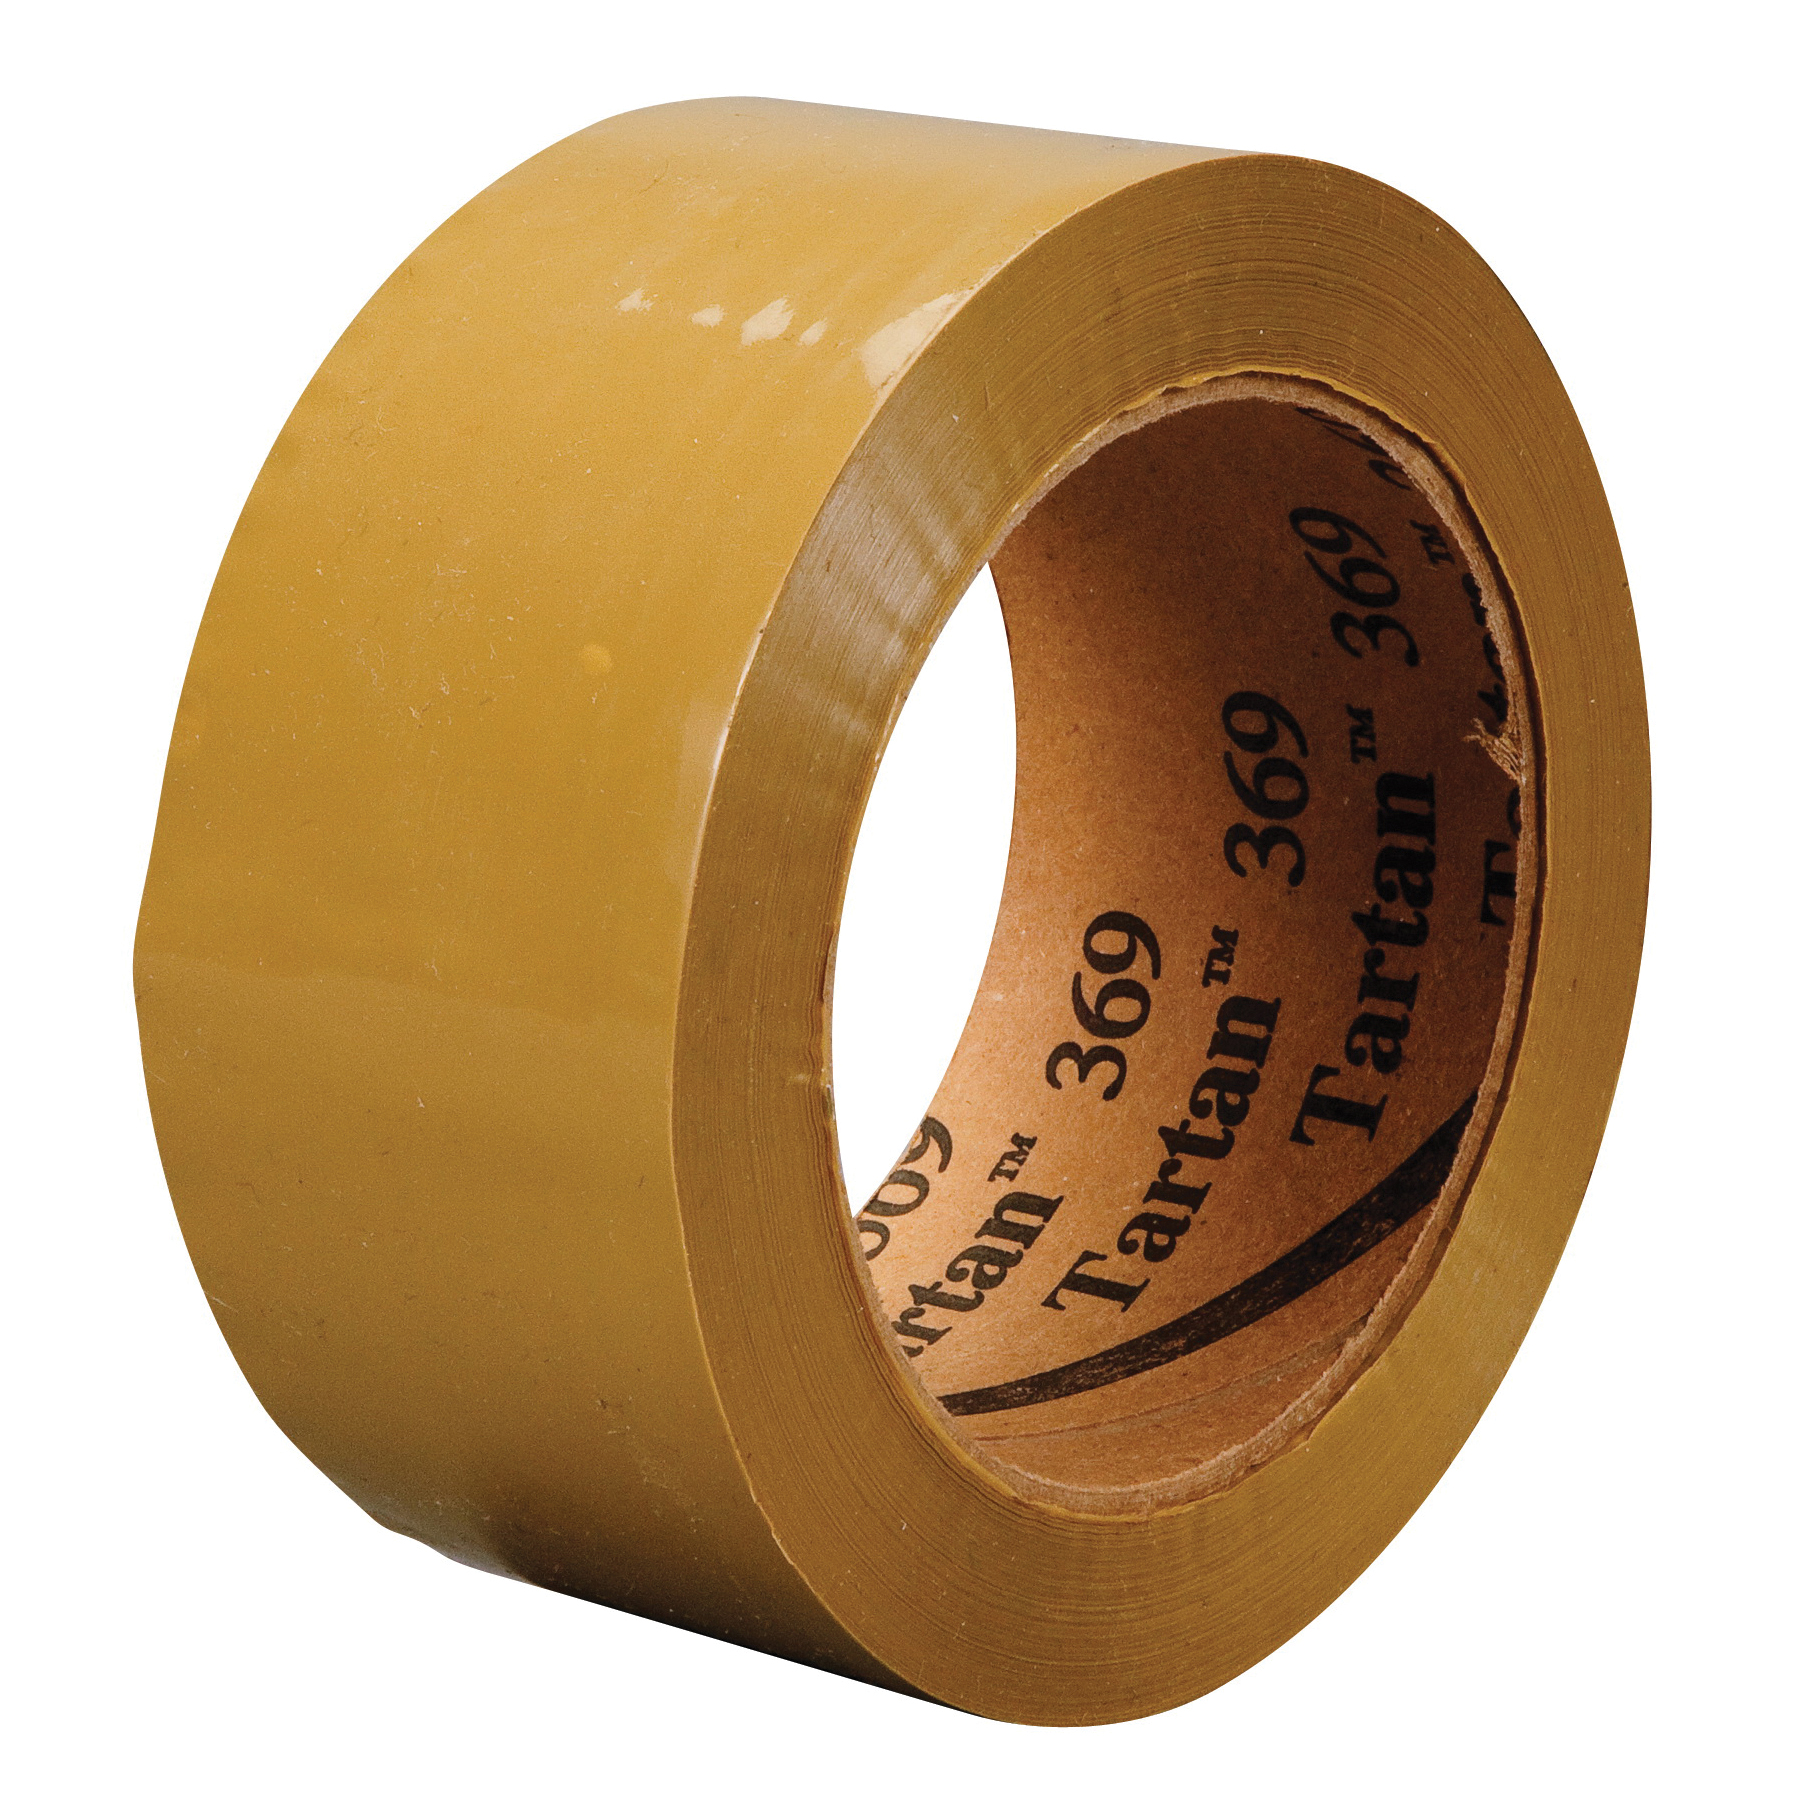 Tartan™ 021200-61547 General Purpose Box Sealing Tape, 50 m L x 48 mm W, 1.6 mil THK, Hot Melt Synthetic Rubber Resin Adhesive, Polypropylene Film Backing, Tan